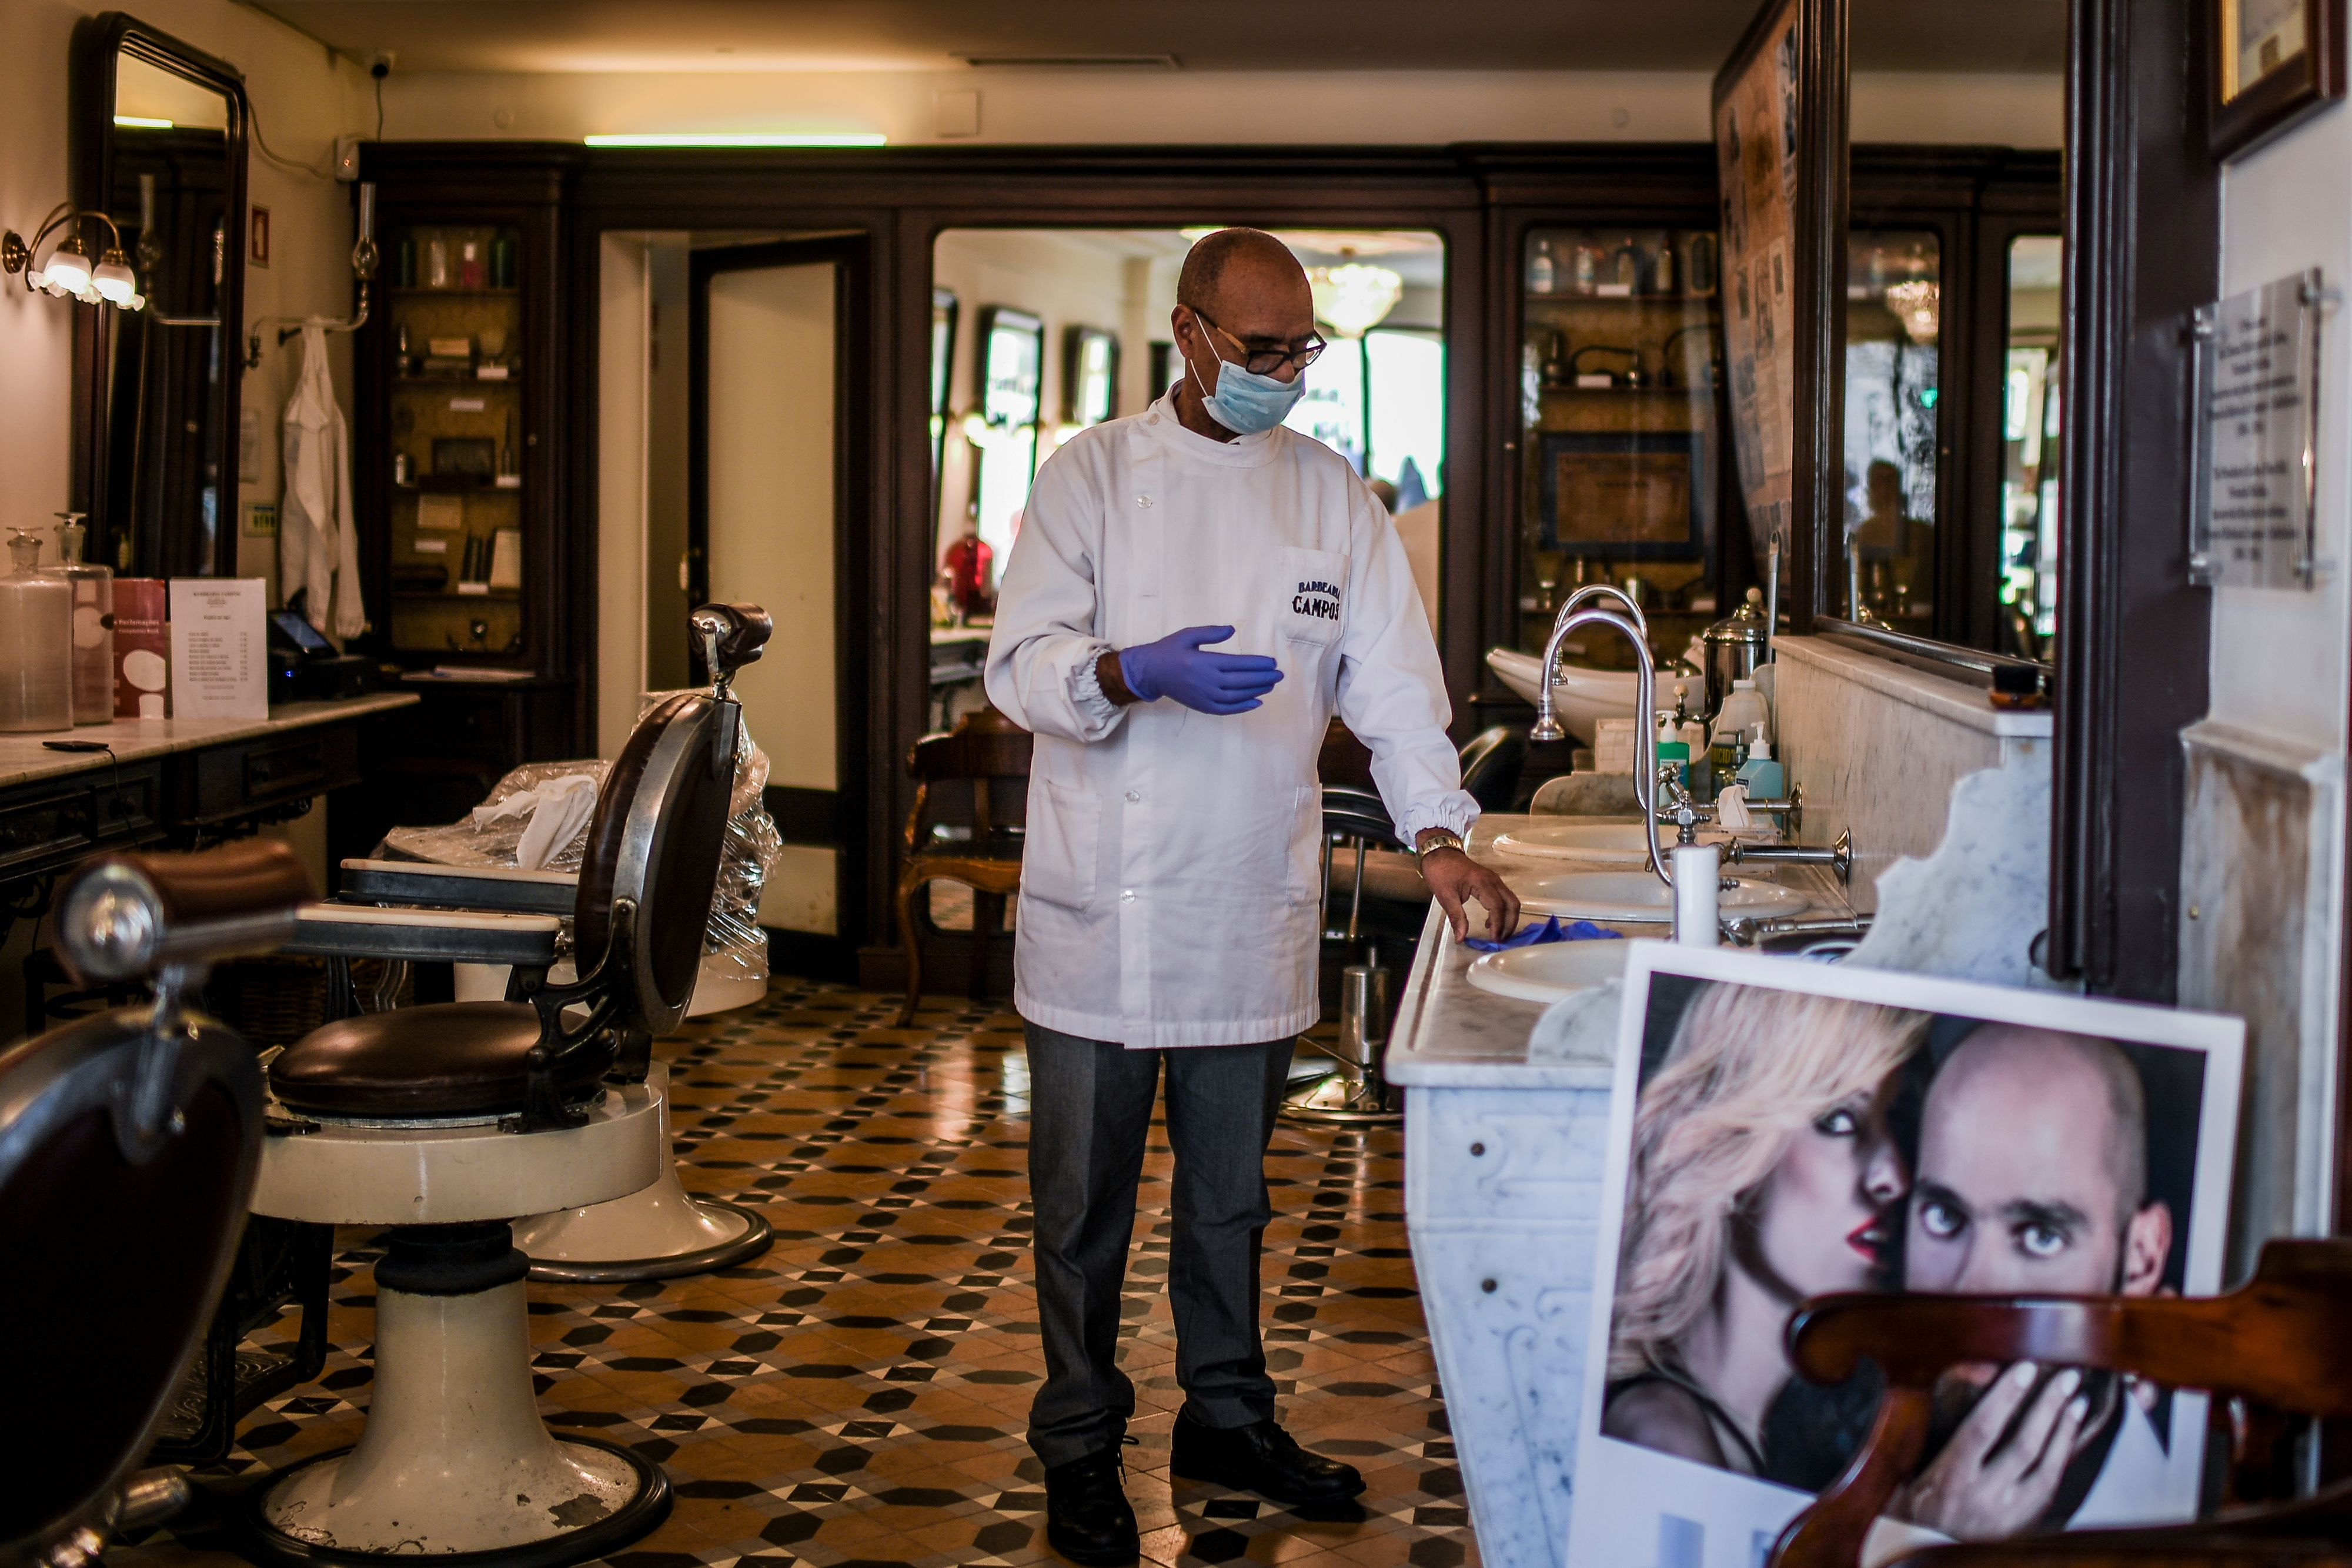 Portuguese barber Elizio da Silva Gomes wearing a protective mask puts on his gloves at the Campos barbershop in Lisbon on March 12, 2020. ( PATRICIA DE MELO MOREIRA/AFP via Getty Images)